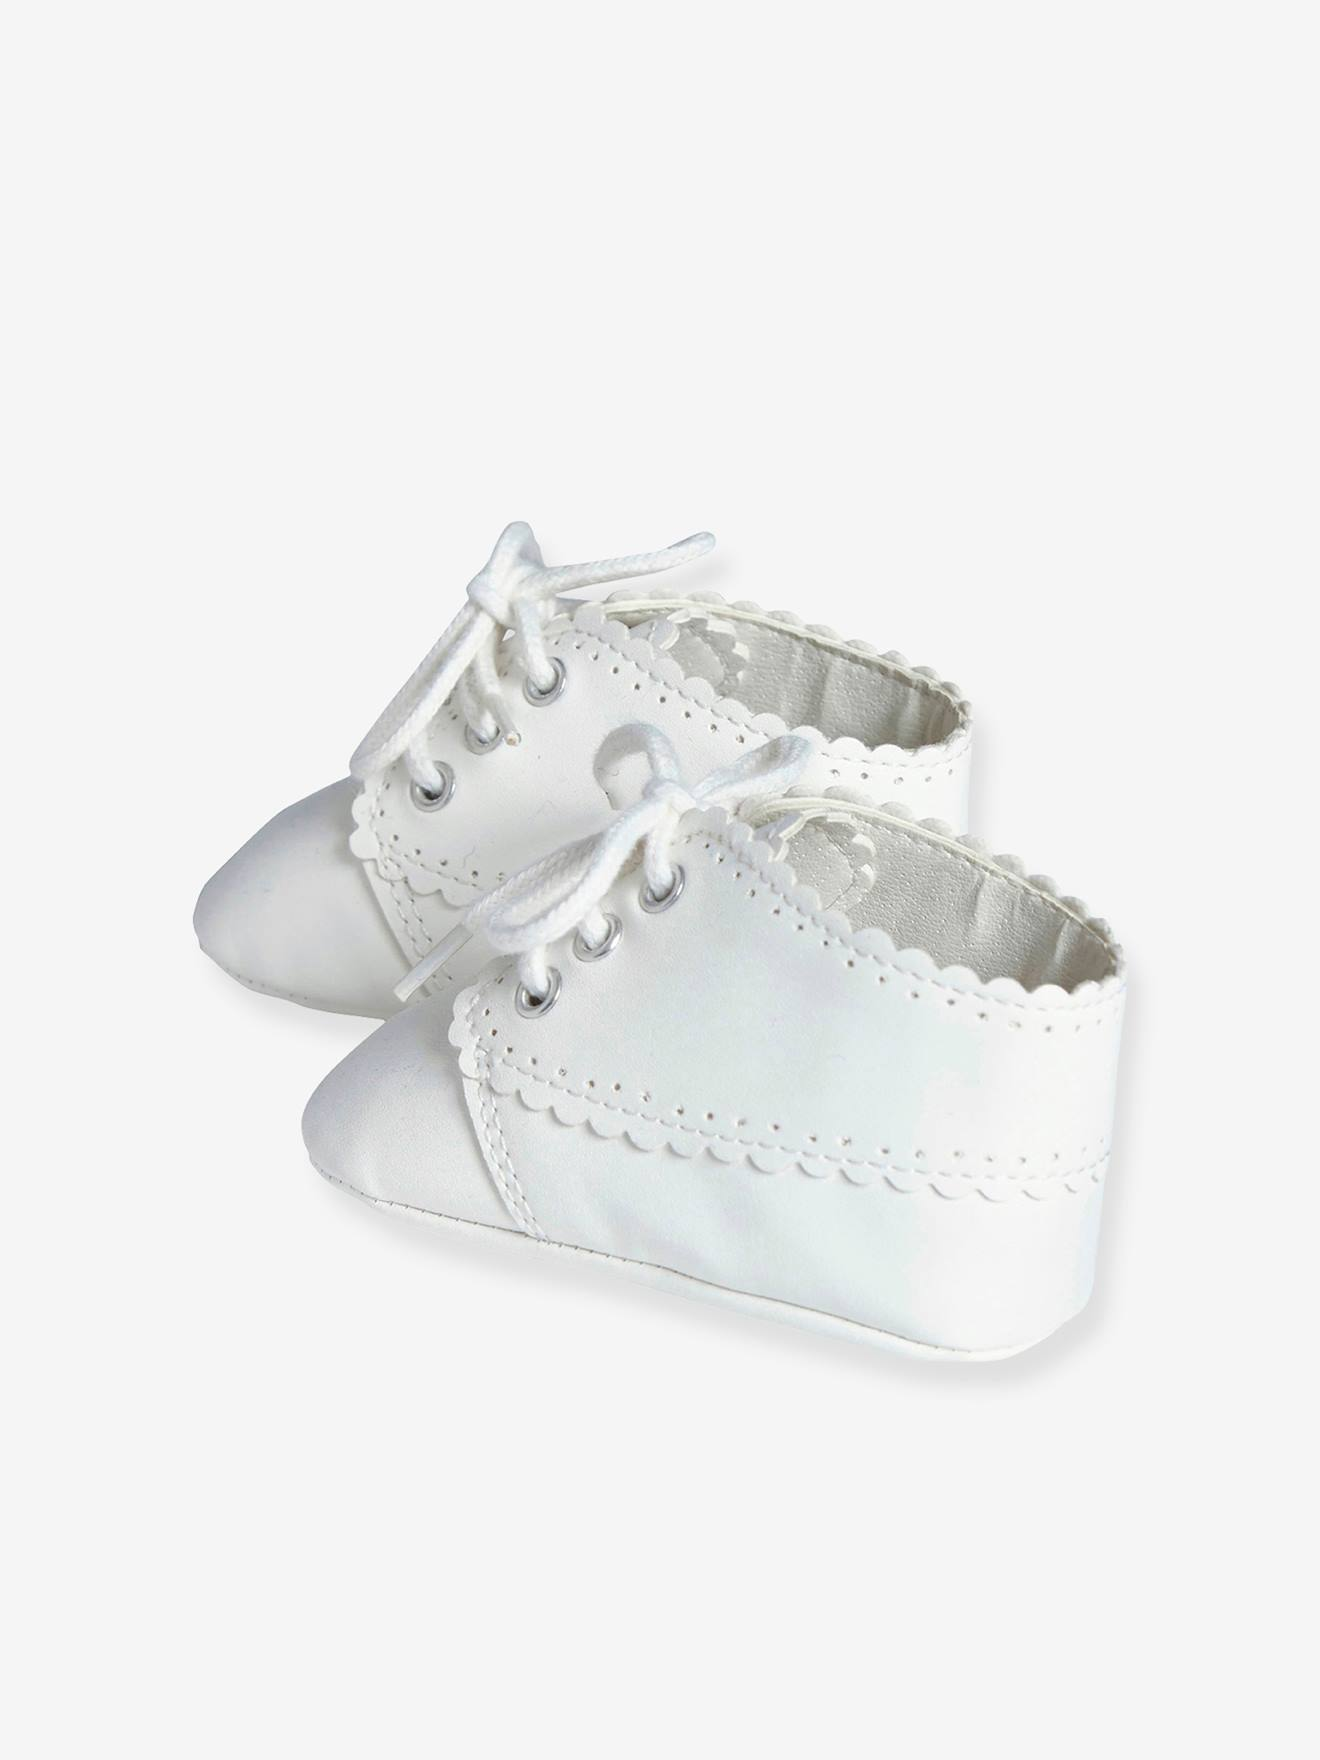 Newborn Baby Slippers - Baby Bootees